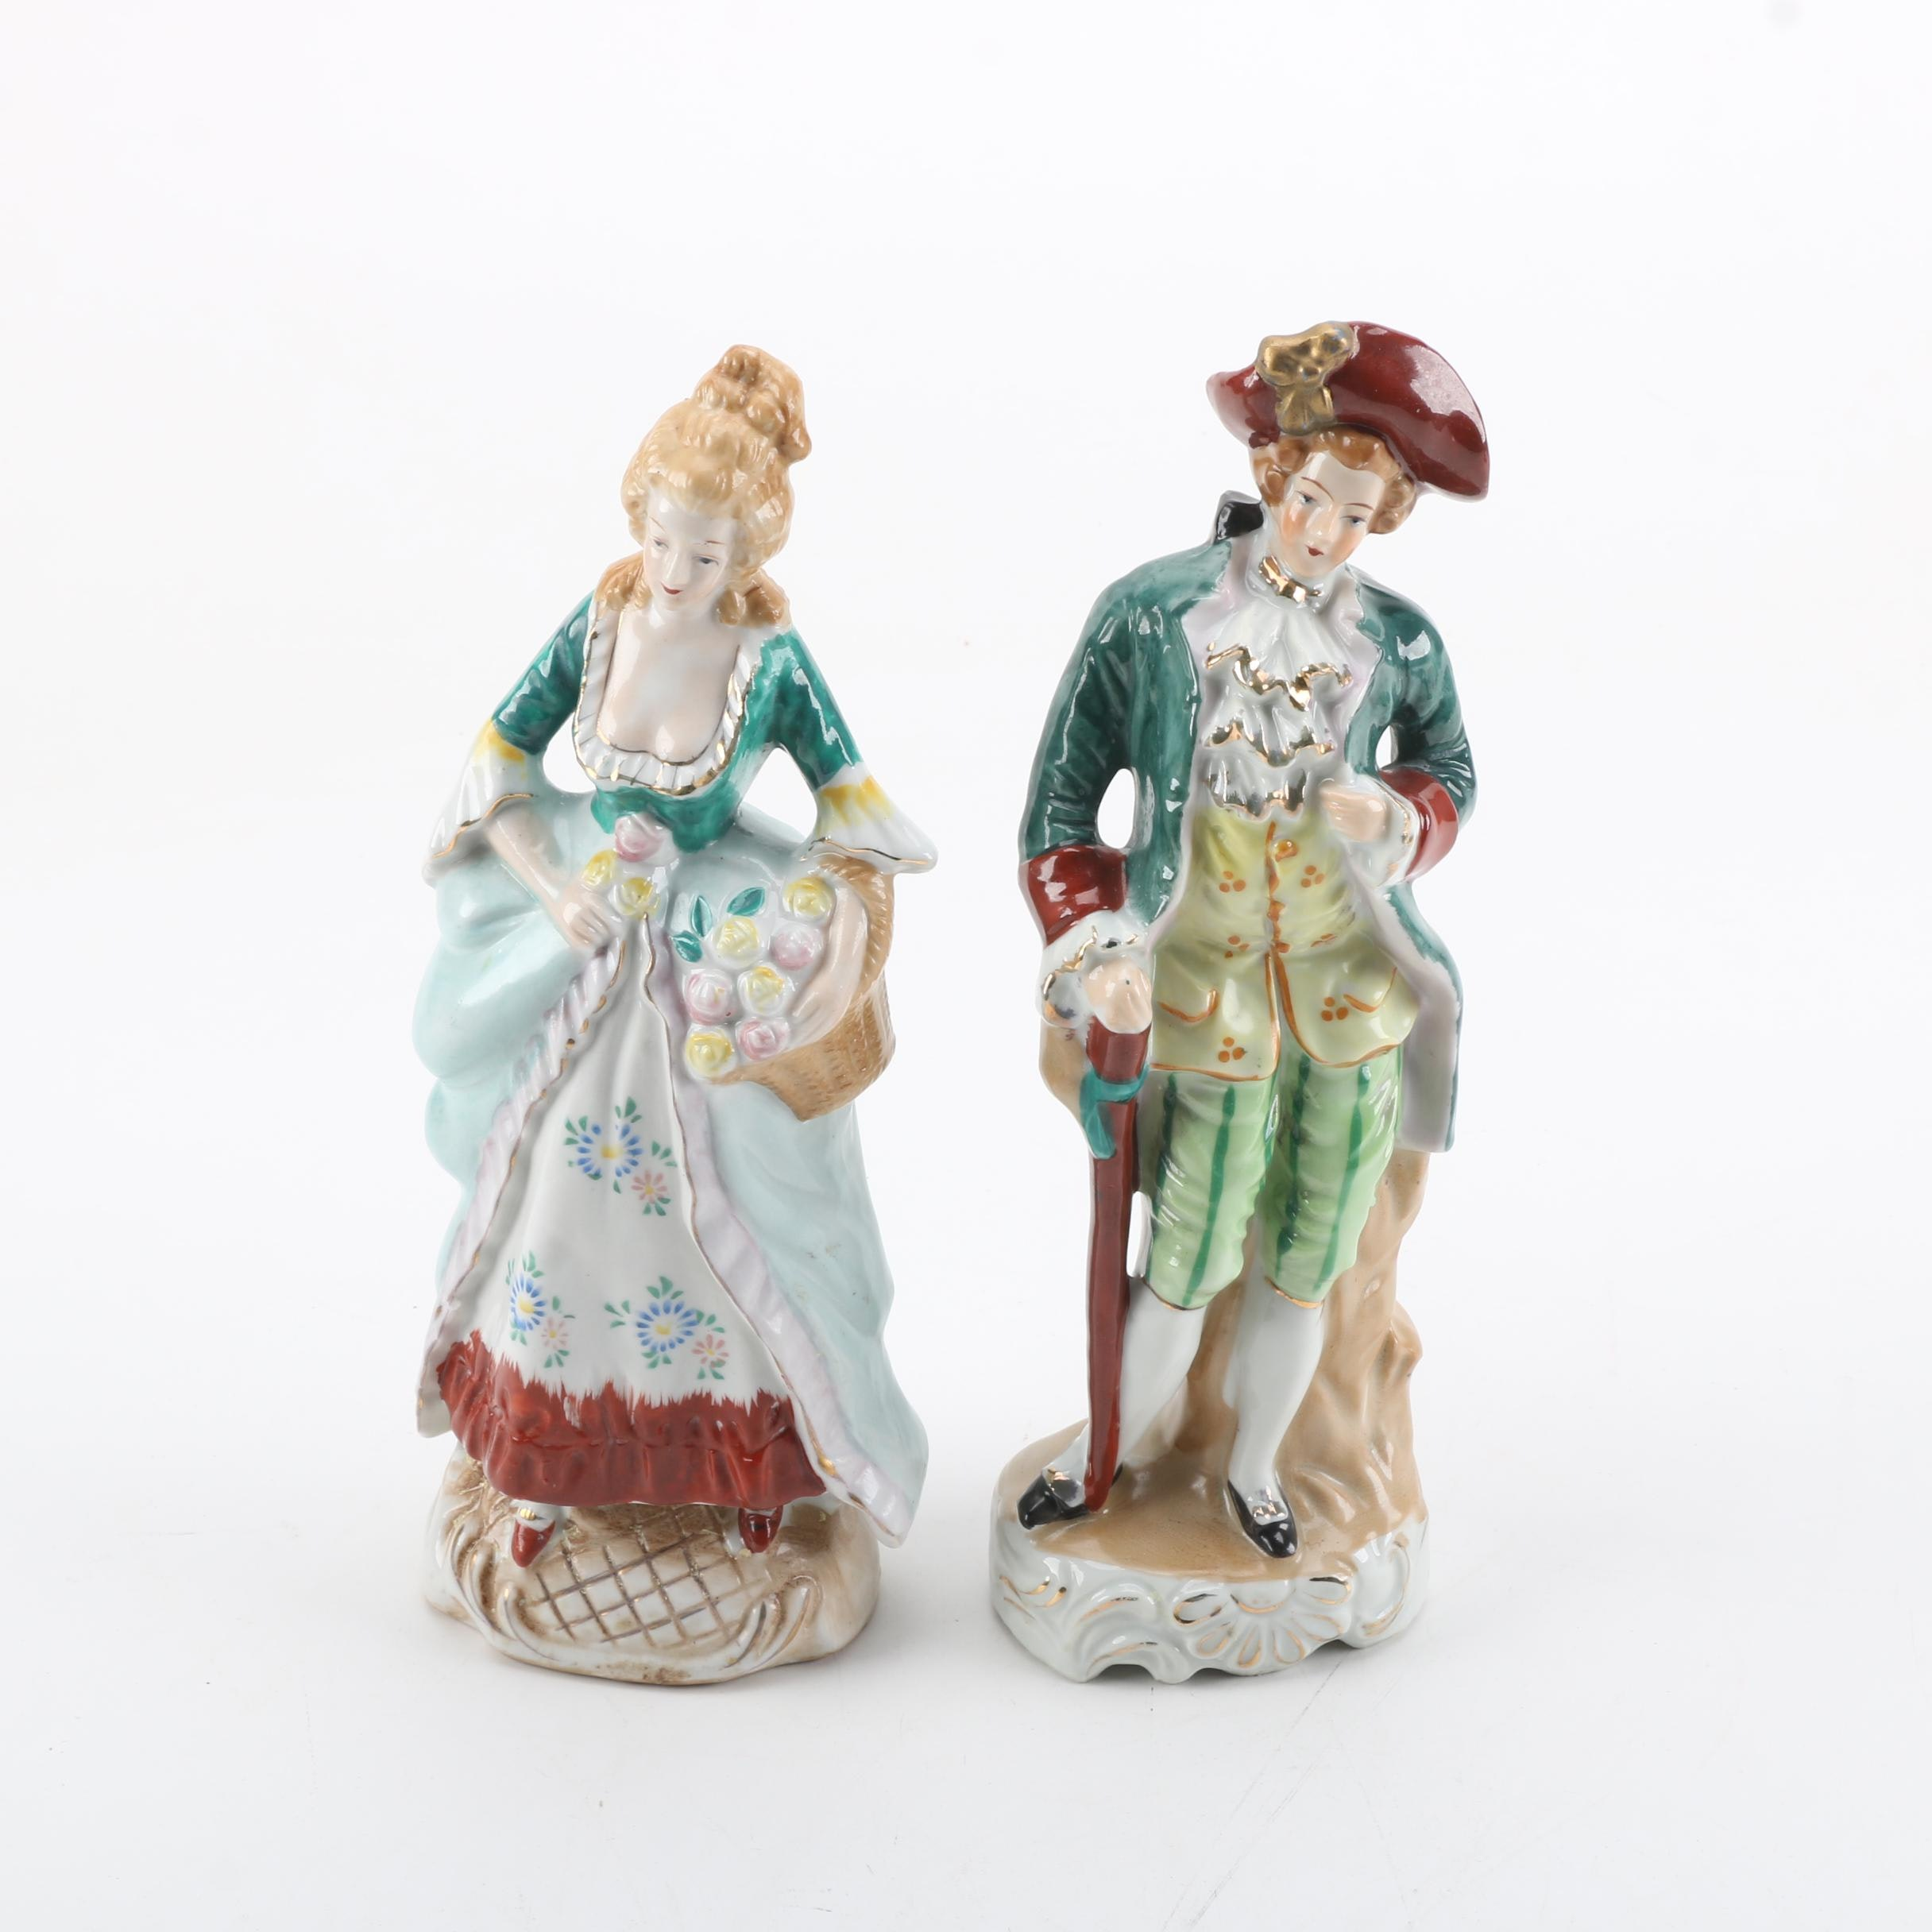 Porcelain Colonial Figurines Made in Japan